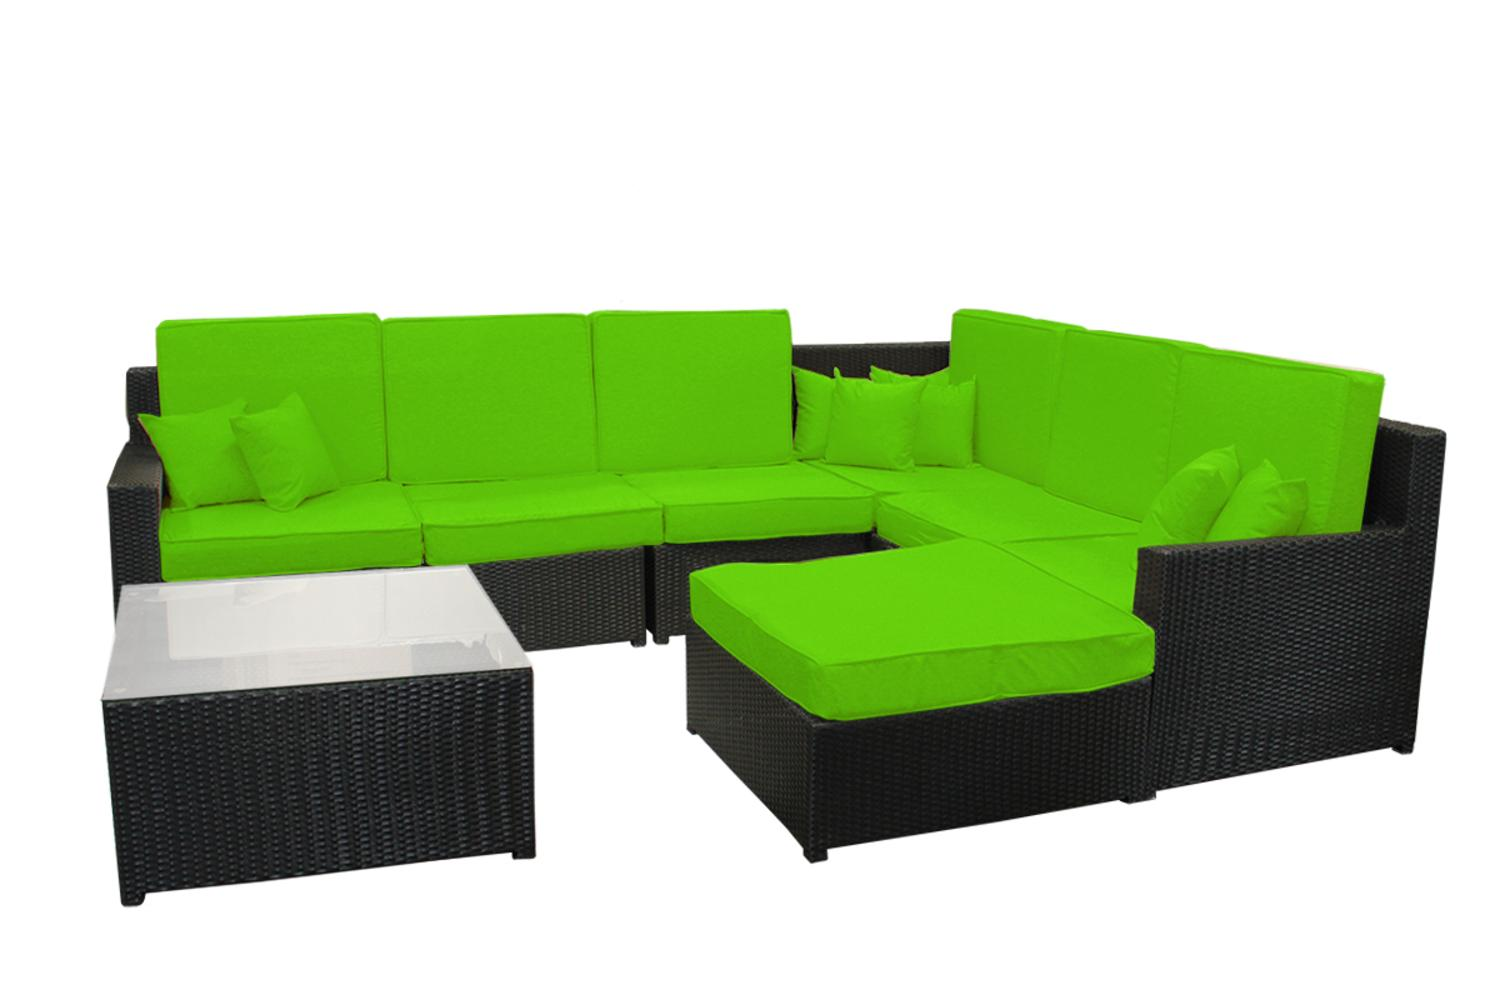 8 Piece Black Resin Wicker Outdoor Furniture Sectional Sofa Table And Ottoman Set Lime Green Cushions Walmart Canada